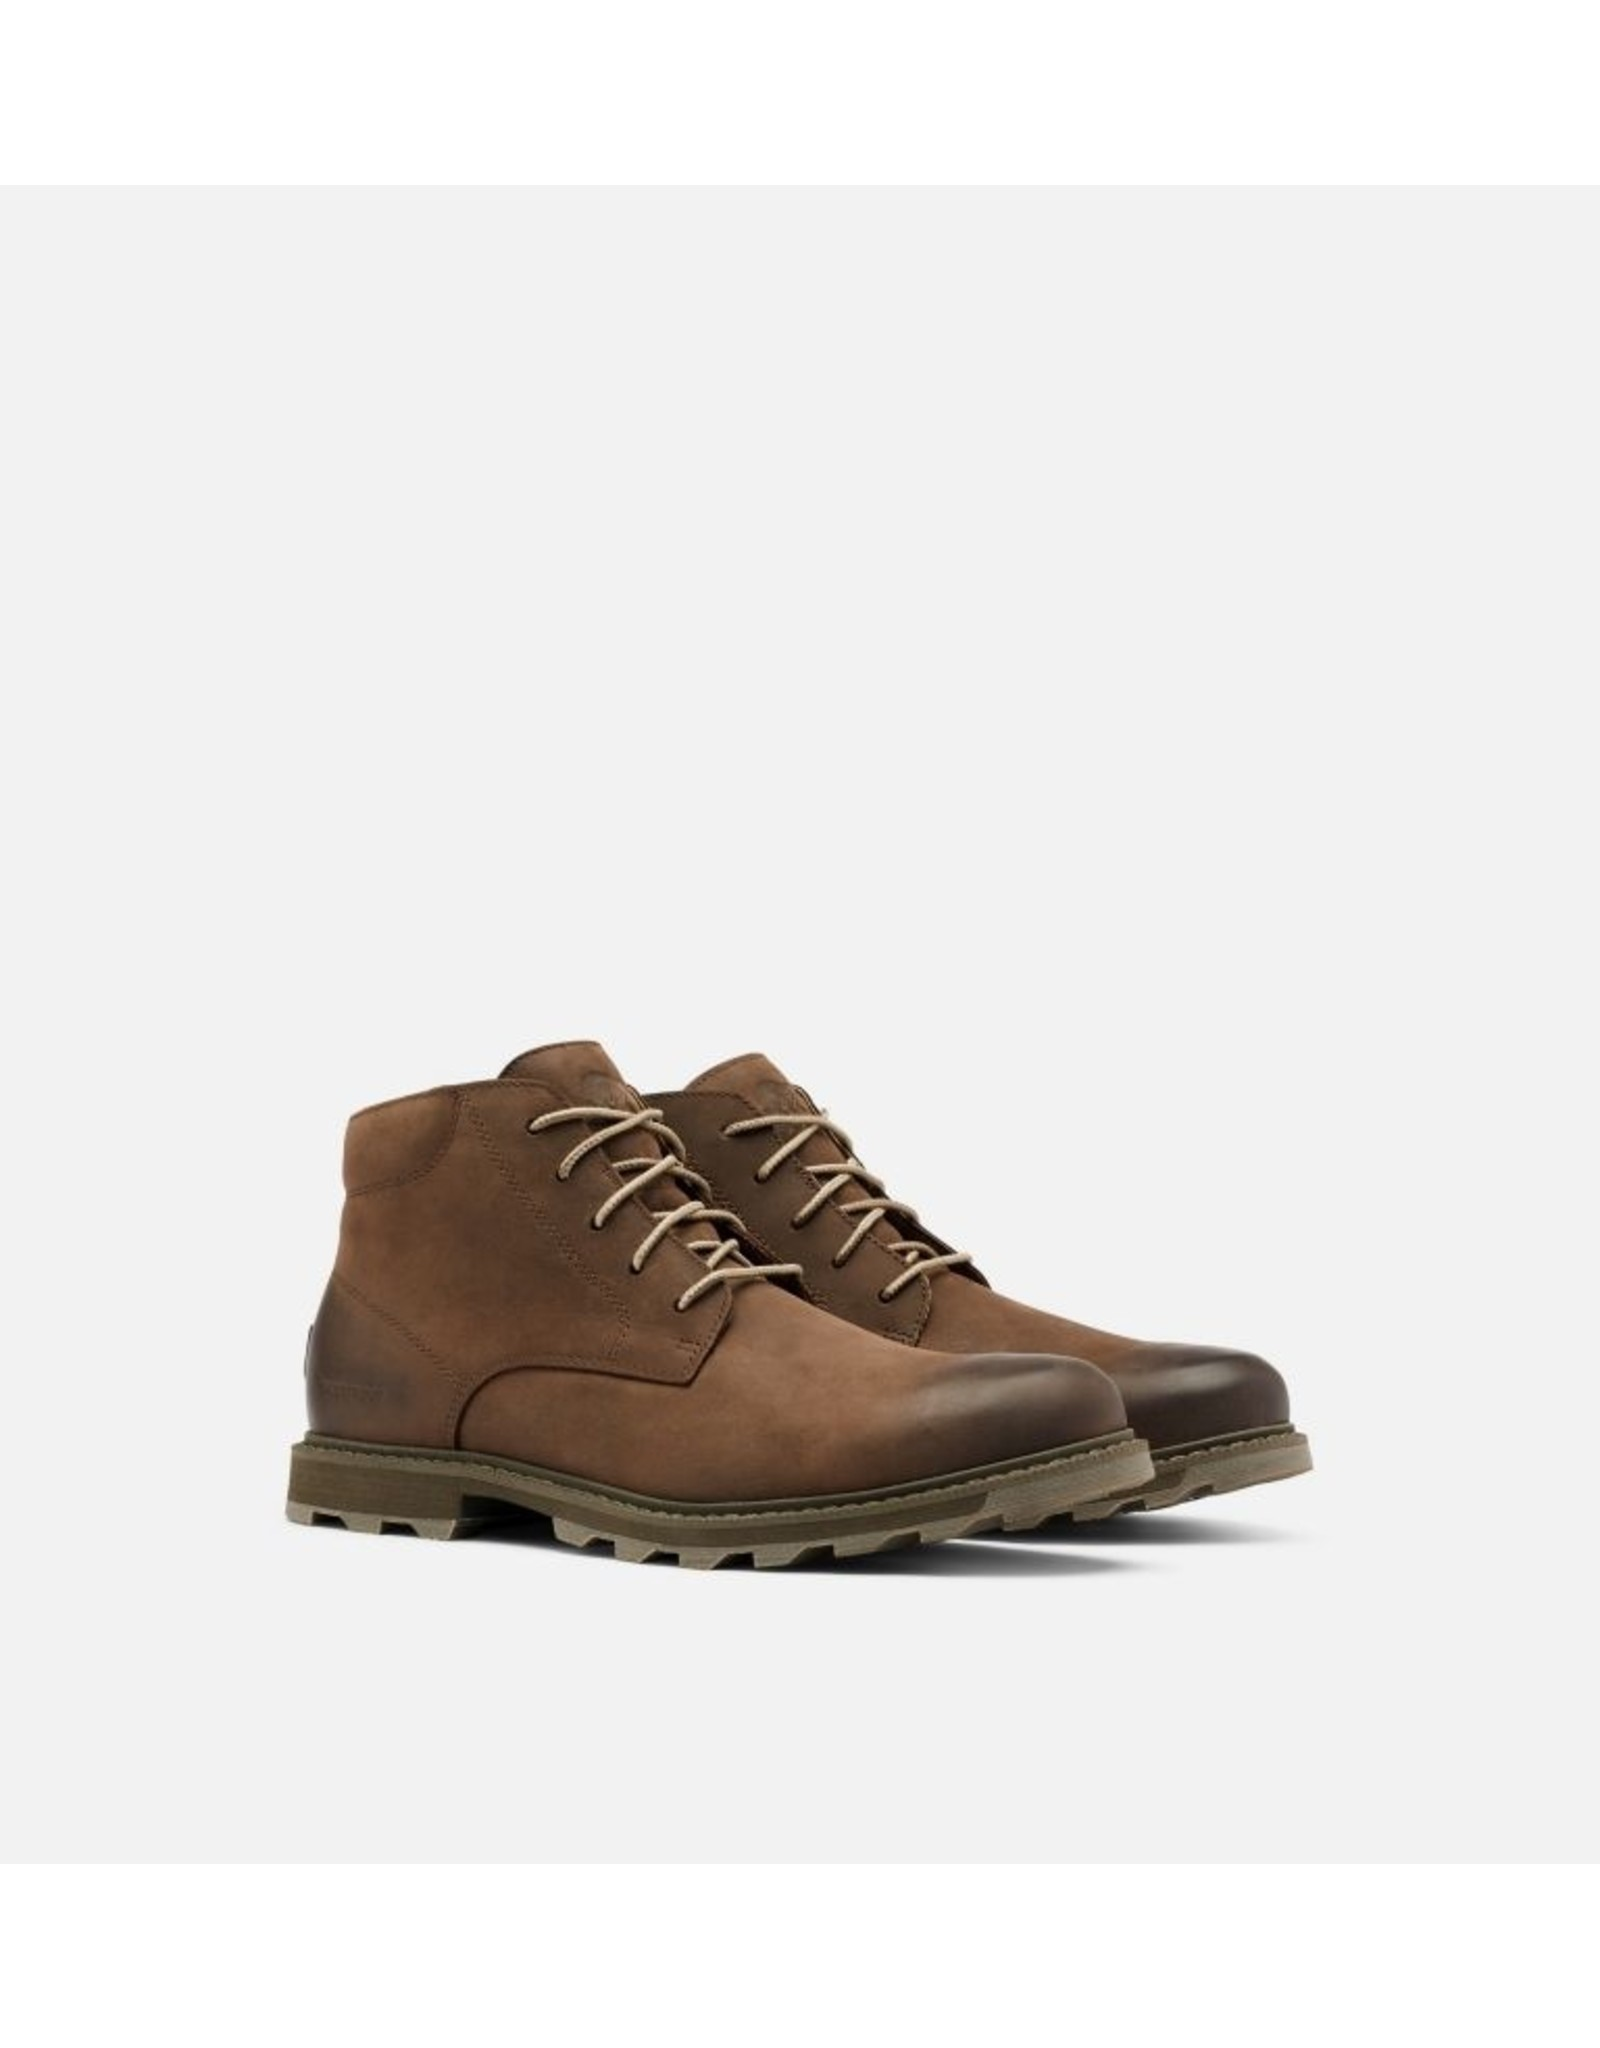 SOREL MEN'S MADSON II CHUKKA WP-TOBACCO